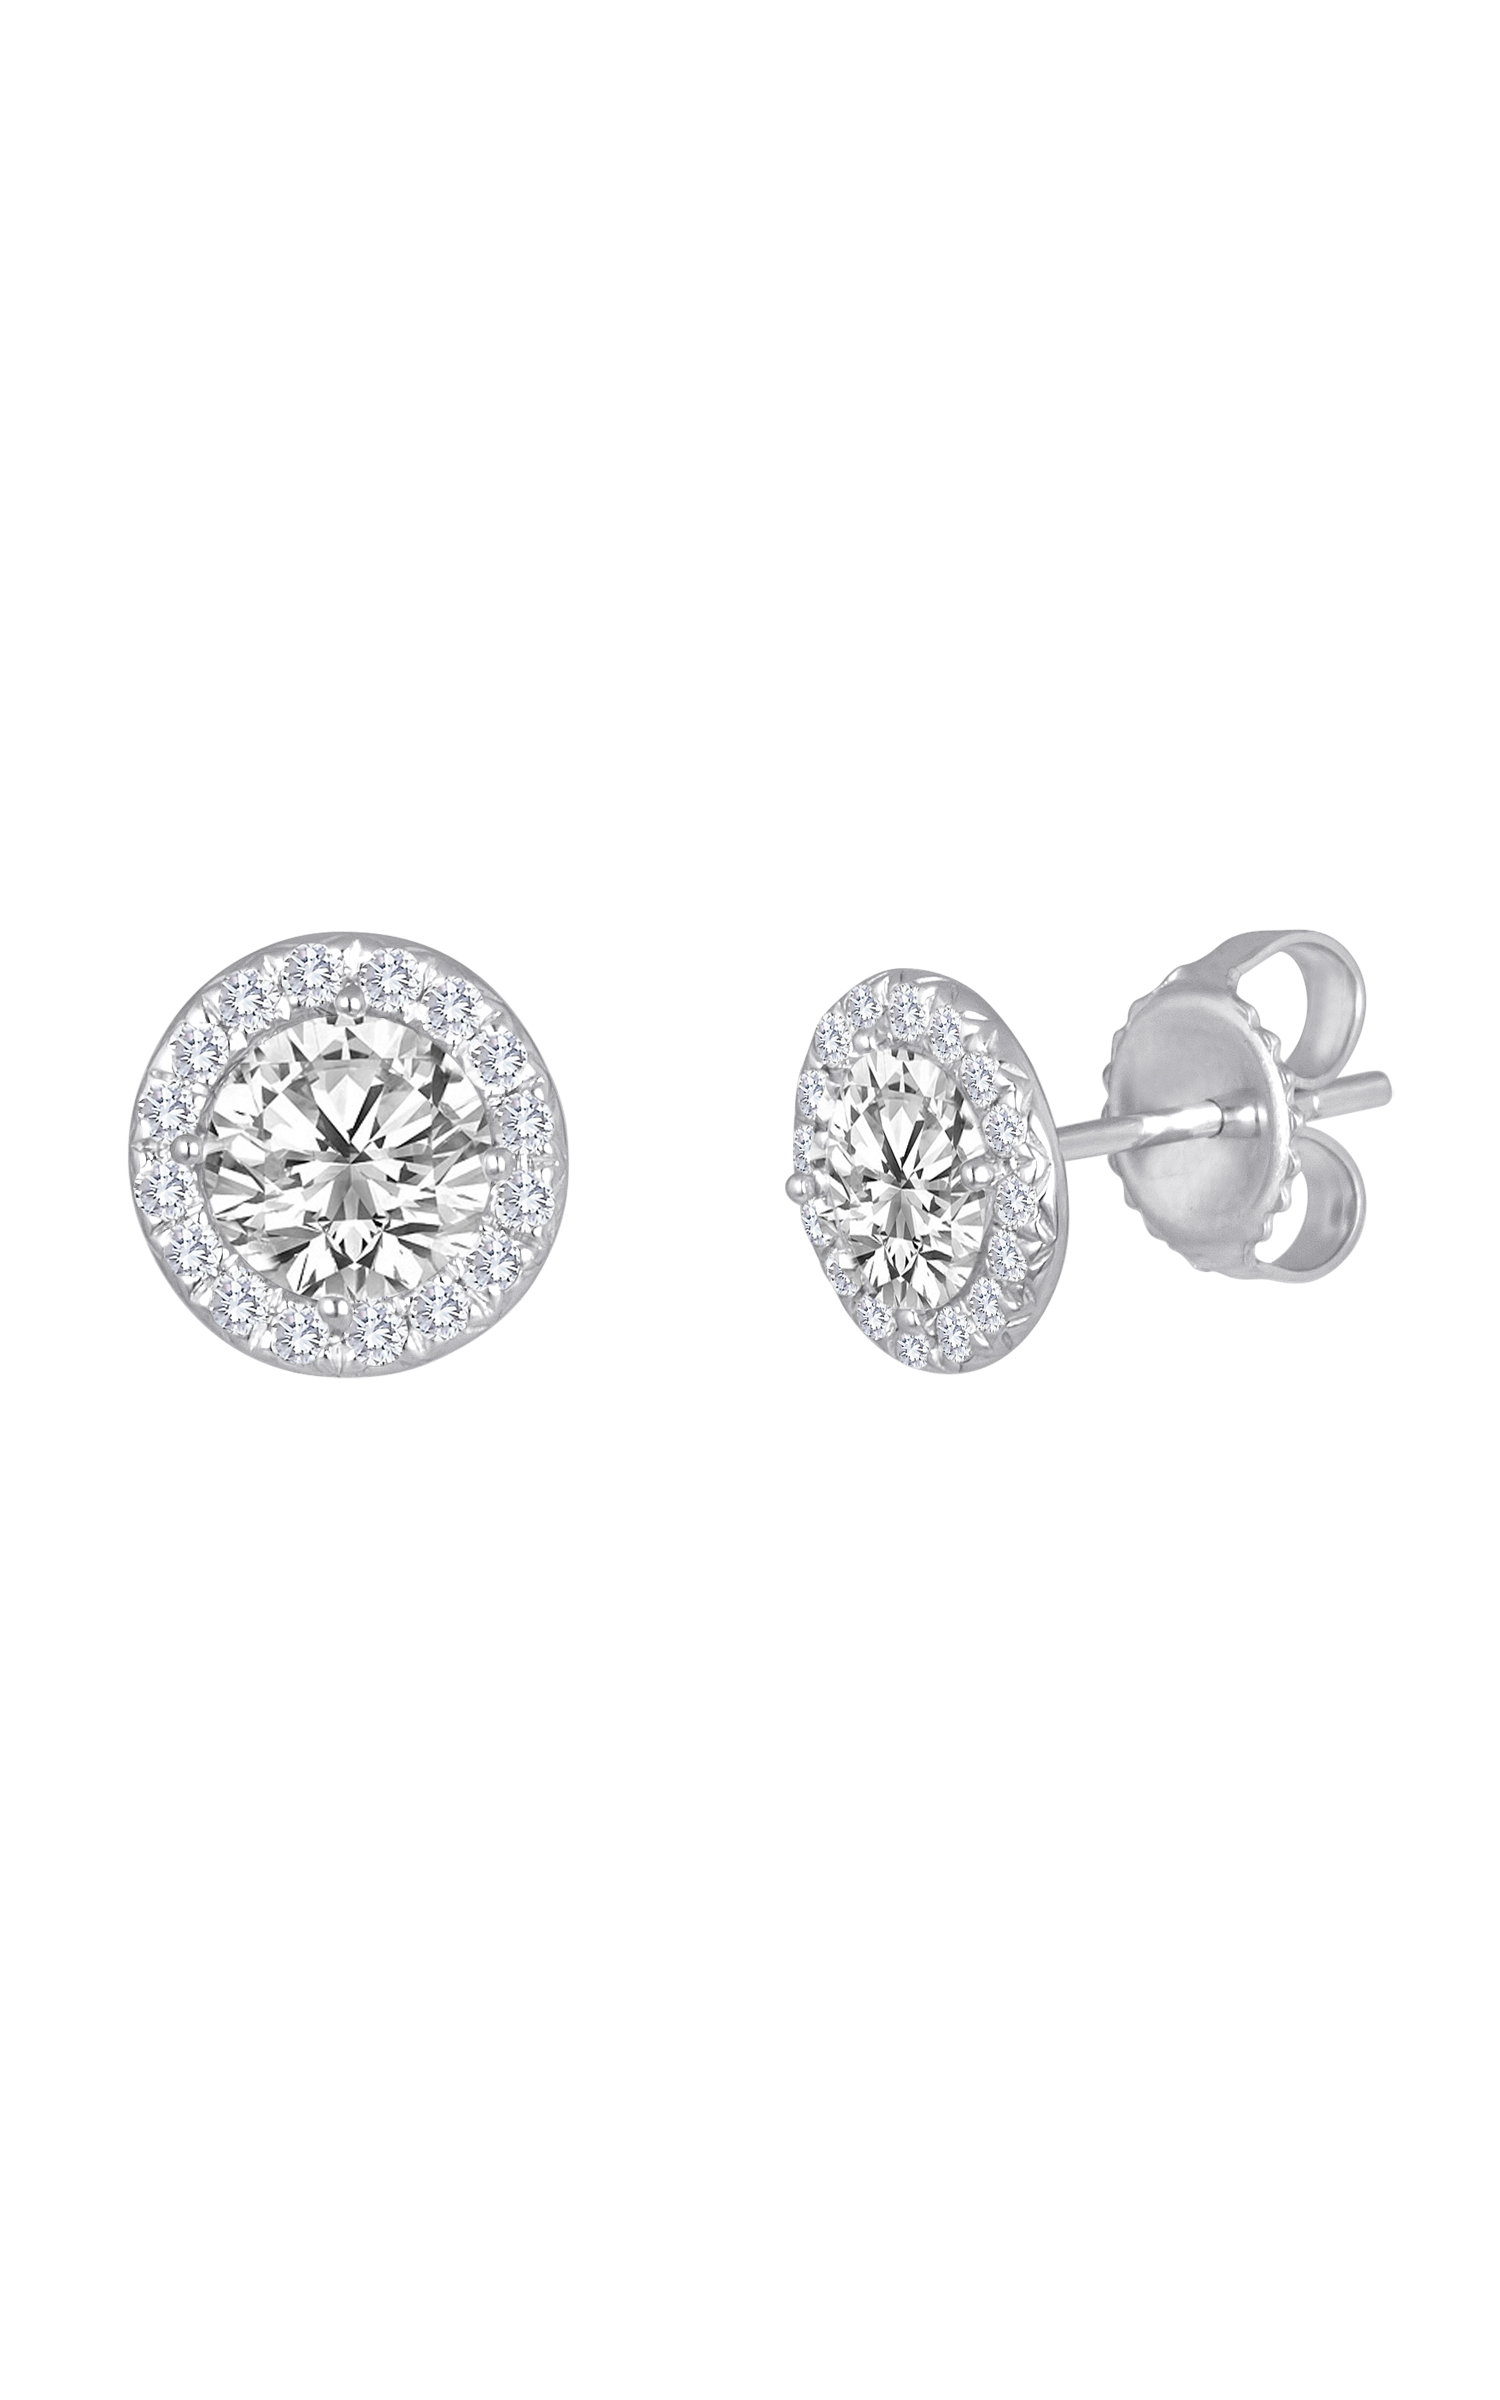 Beny Sofer Earrings SE12-146-1B product image